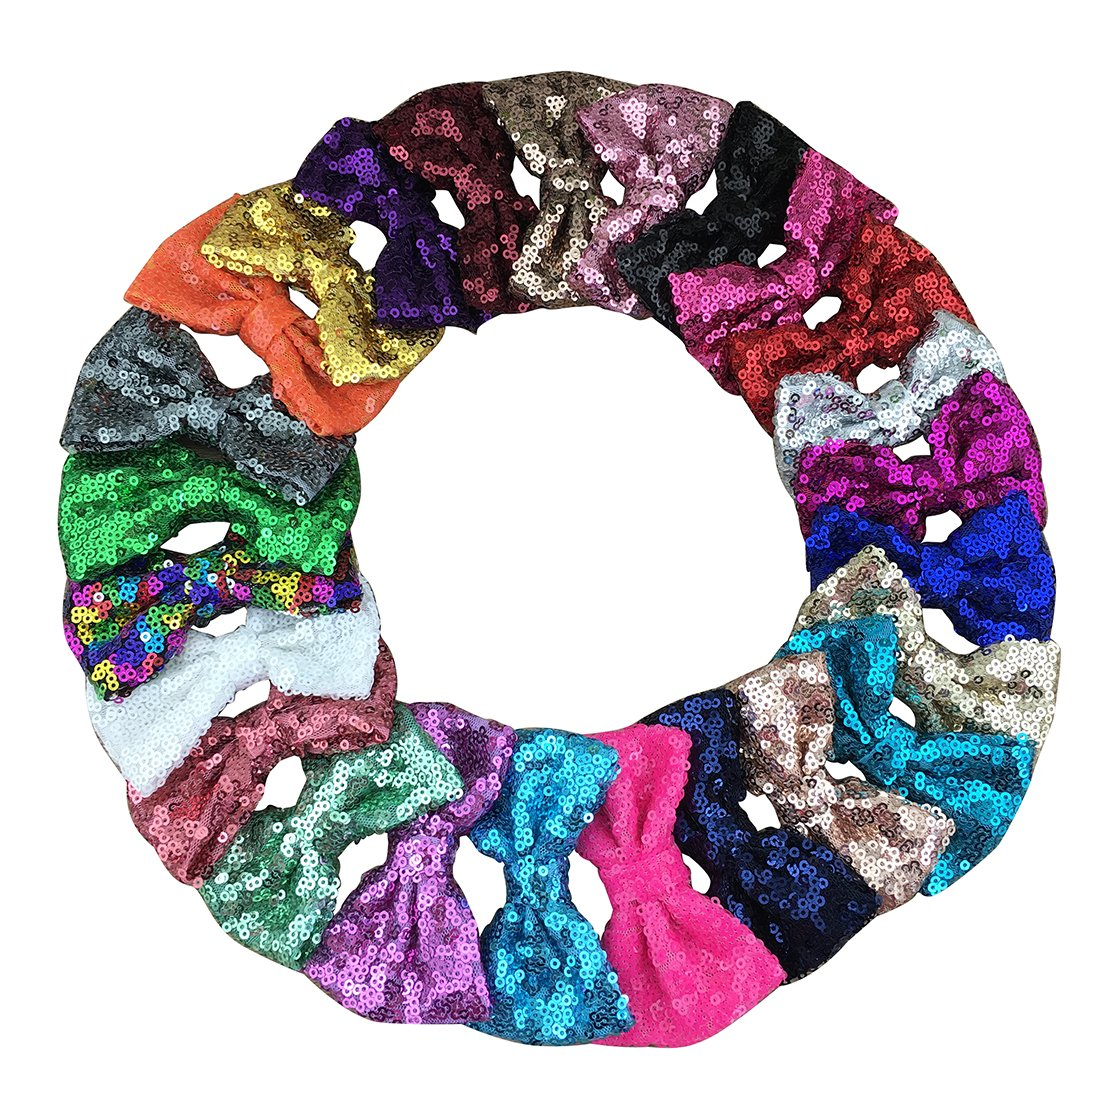 XIMA 25pcs Sequin Hairbows With Alligator Clips Baby Girl Hair Accessory 3'' Glitter Bows Toddler Hair Clip Sparkly Fabric Hair Bows for Kids Teens Toddlers Children